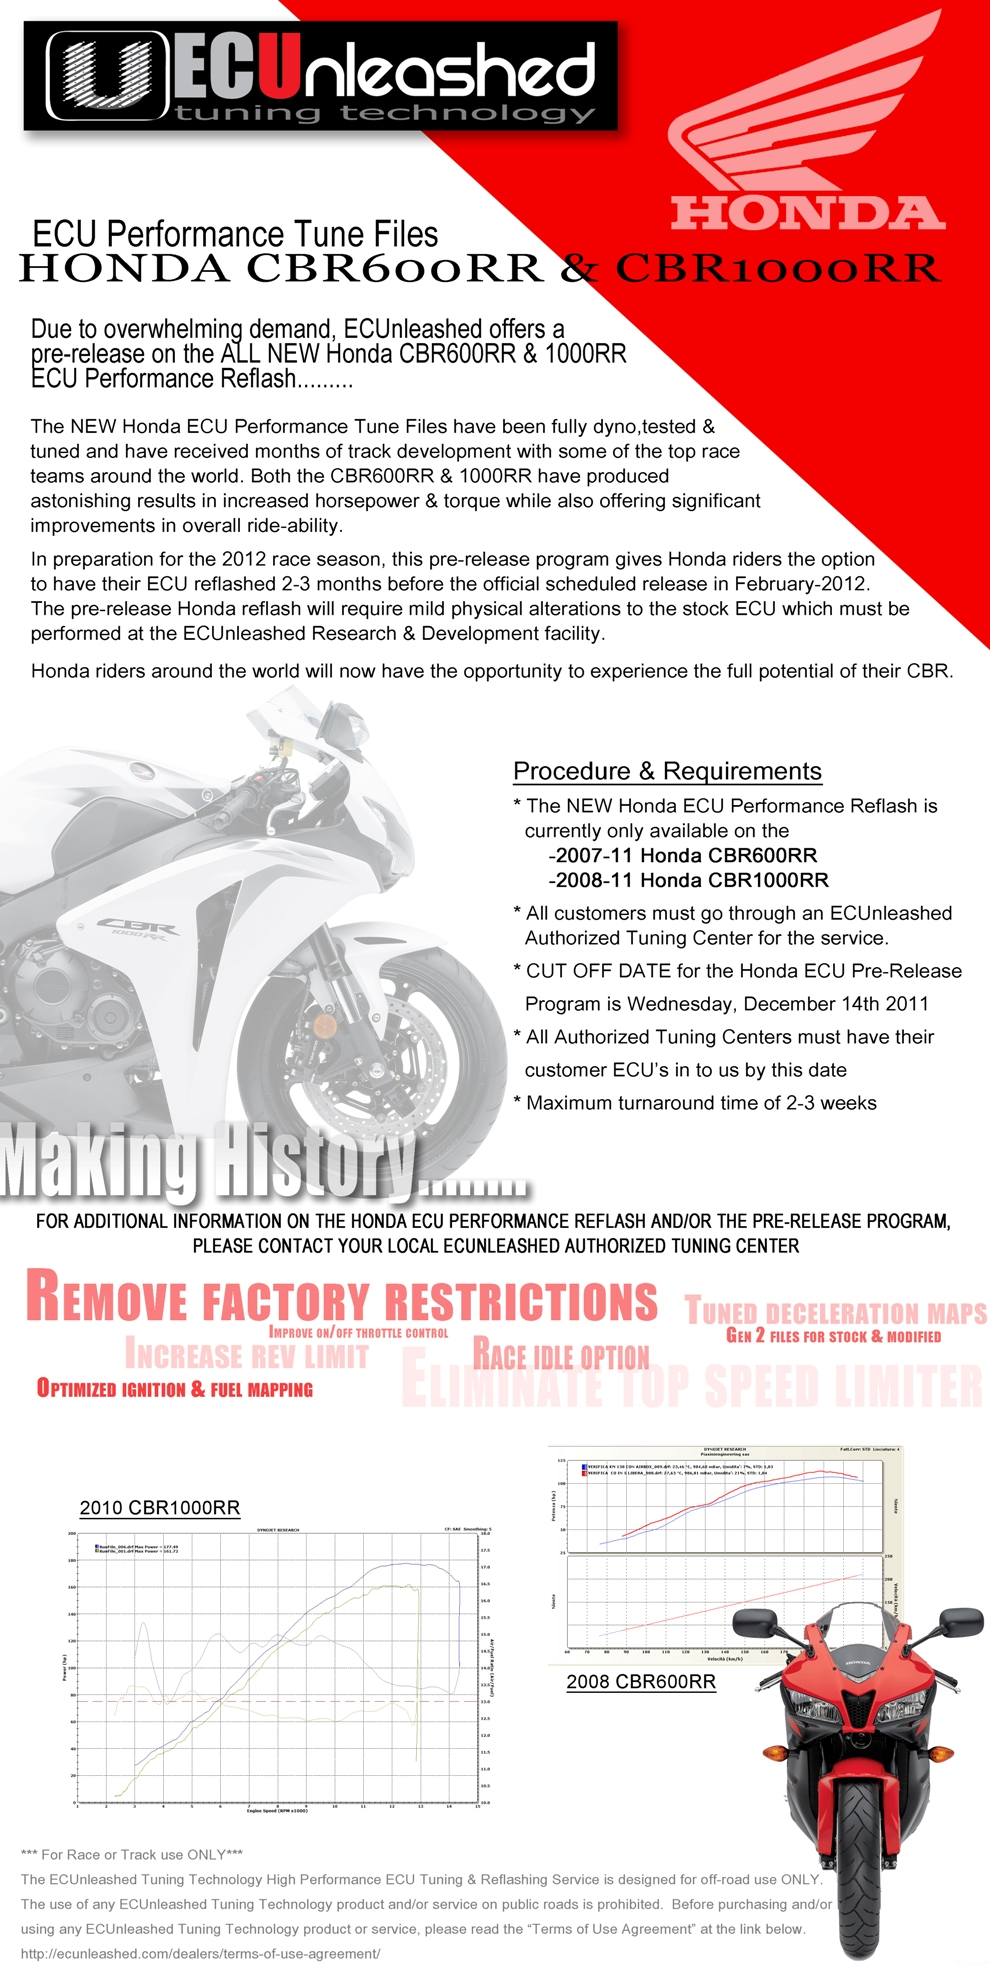 NEW Honda CBR600RR & CBR1000RR ECU Performance Reflash